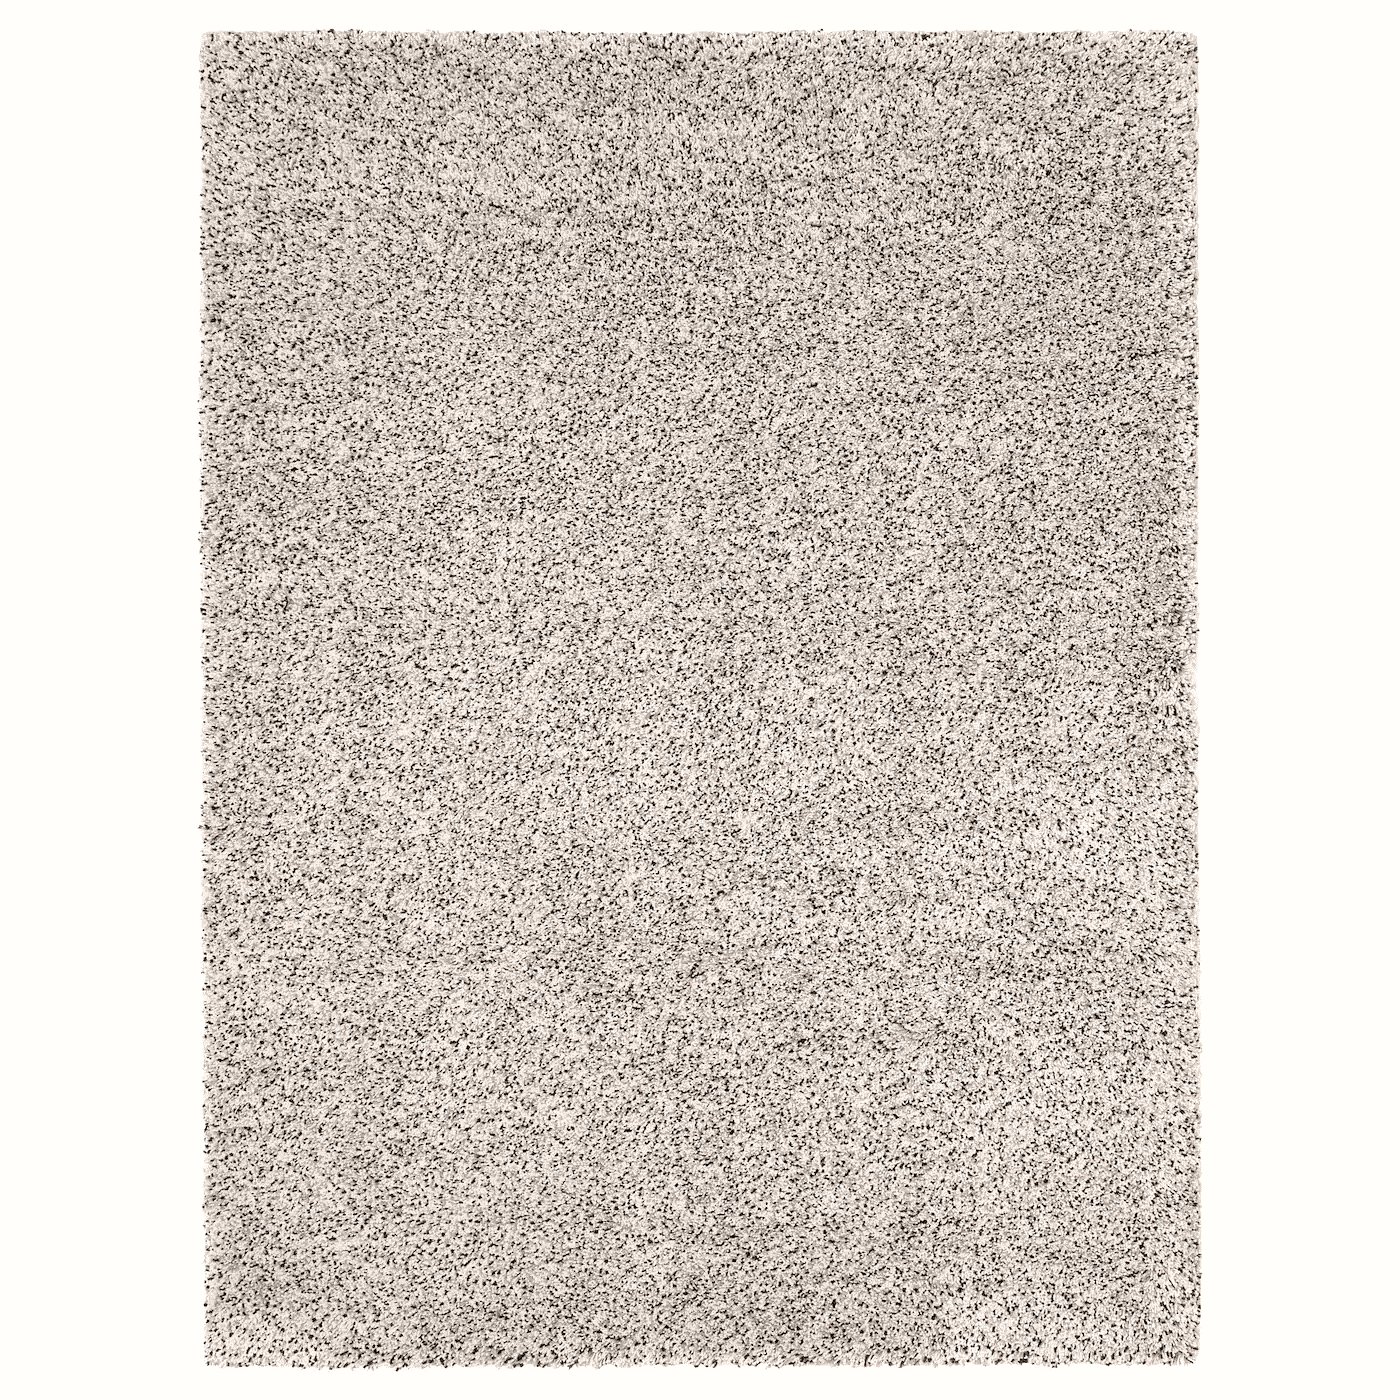 VINDUM Rug, high pile, white 1